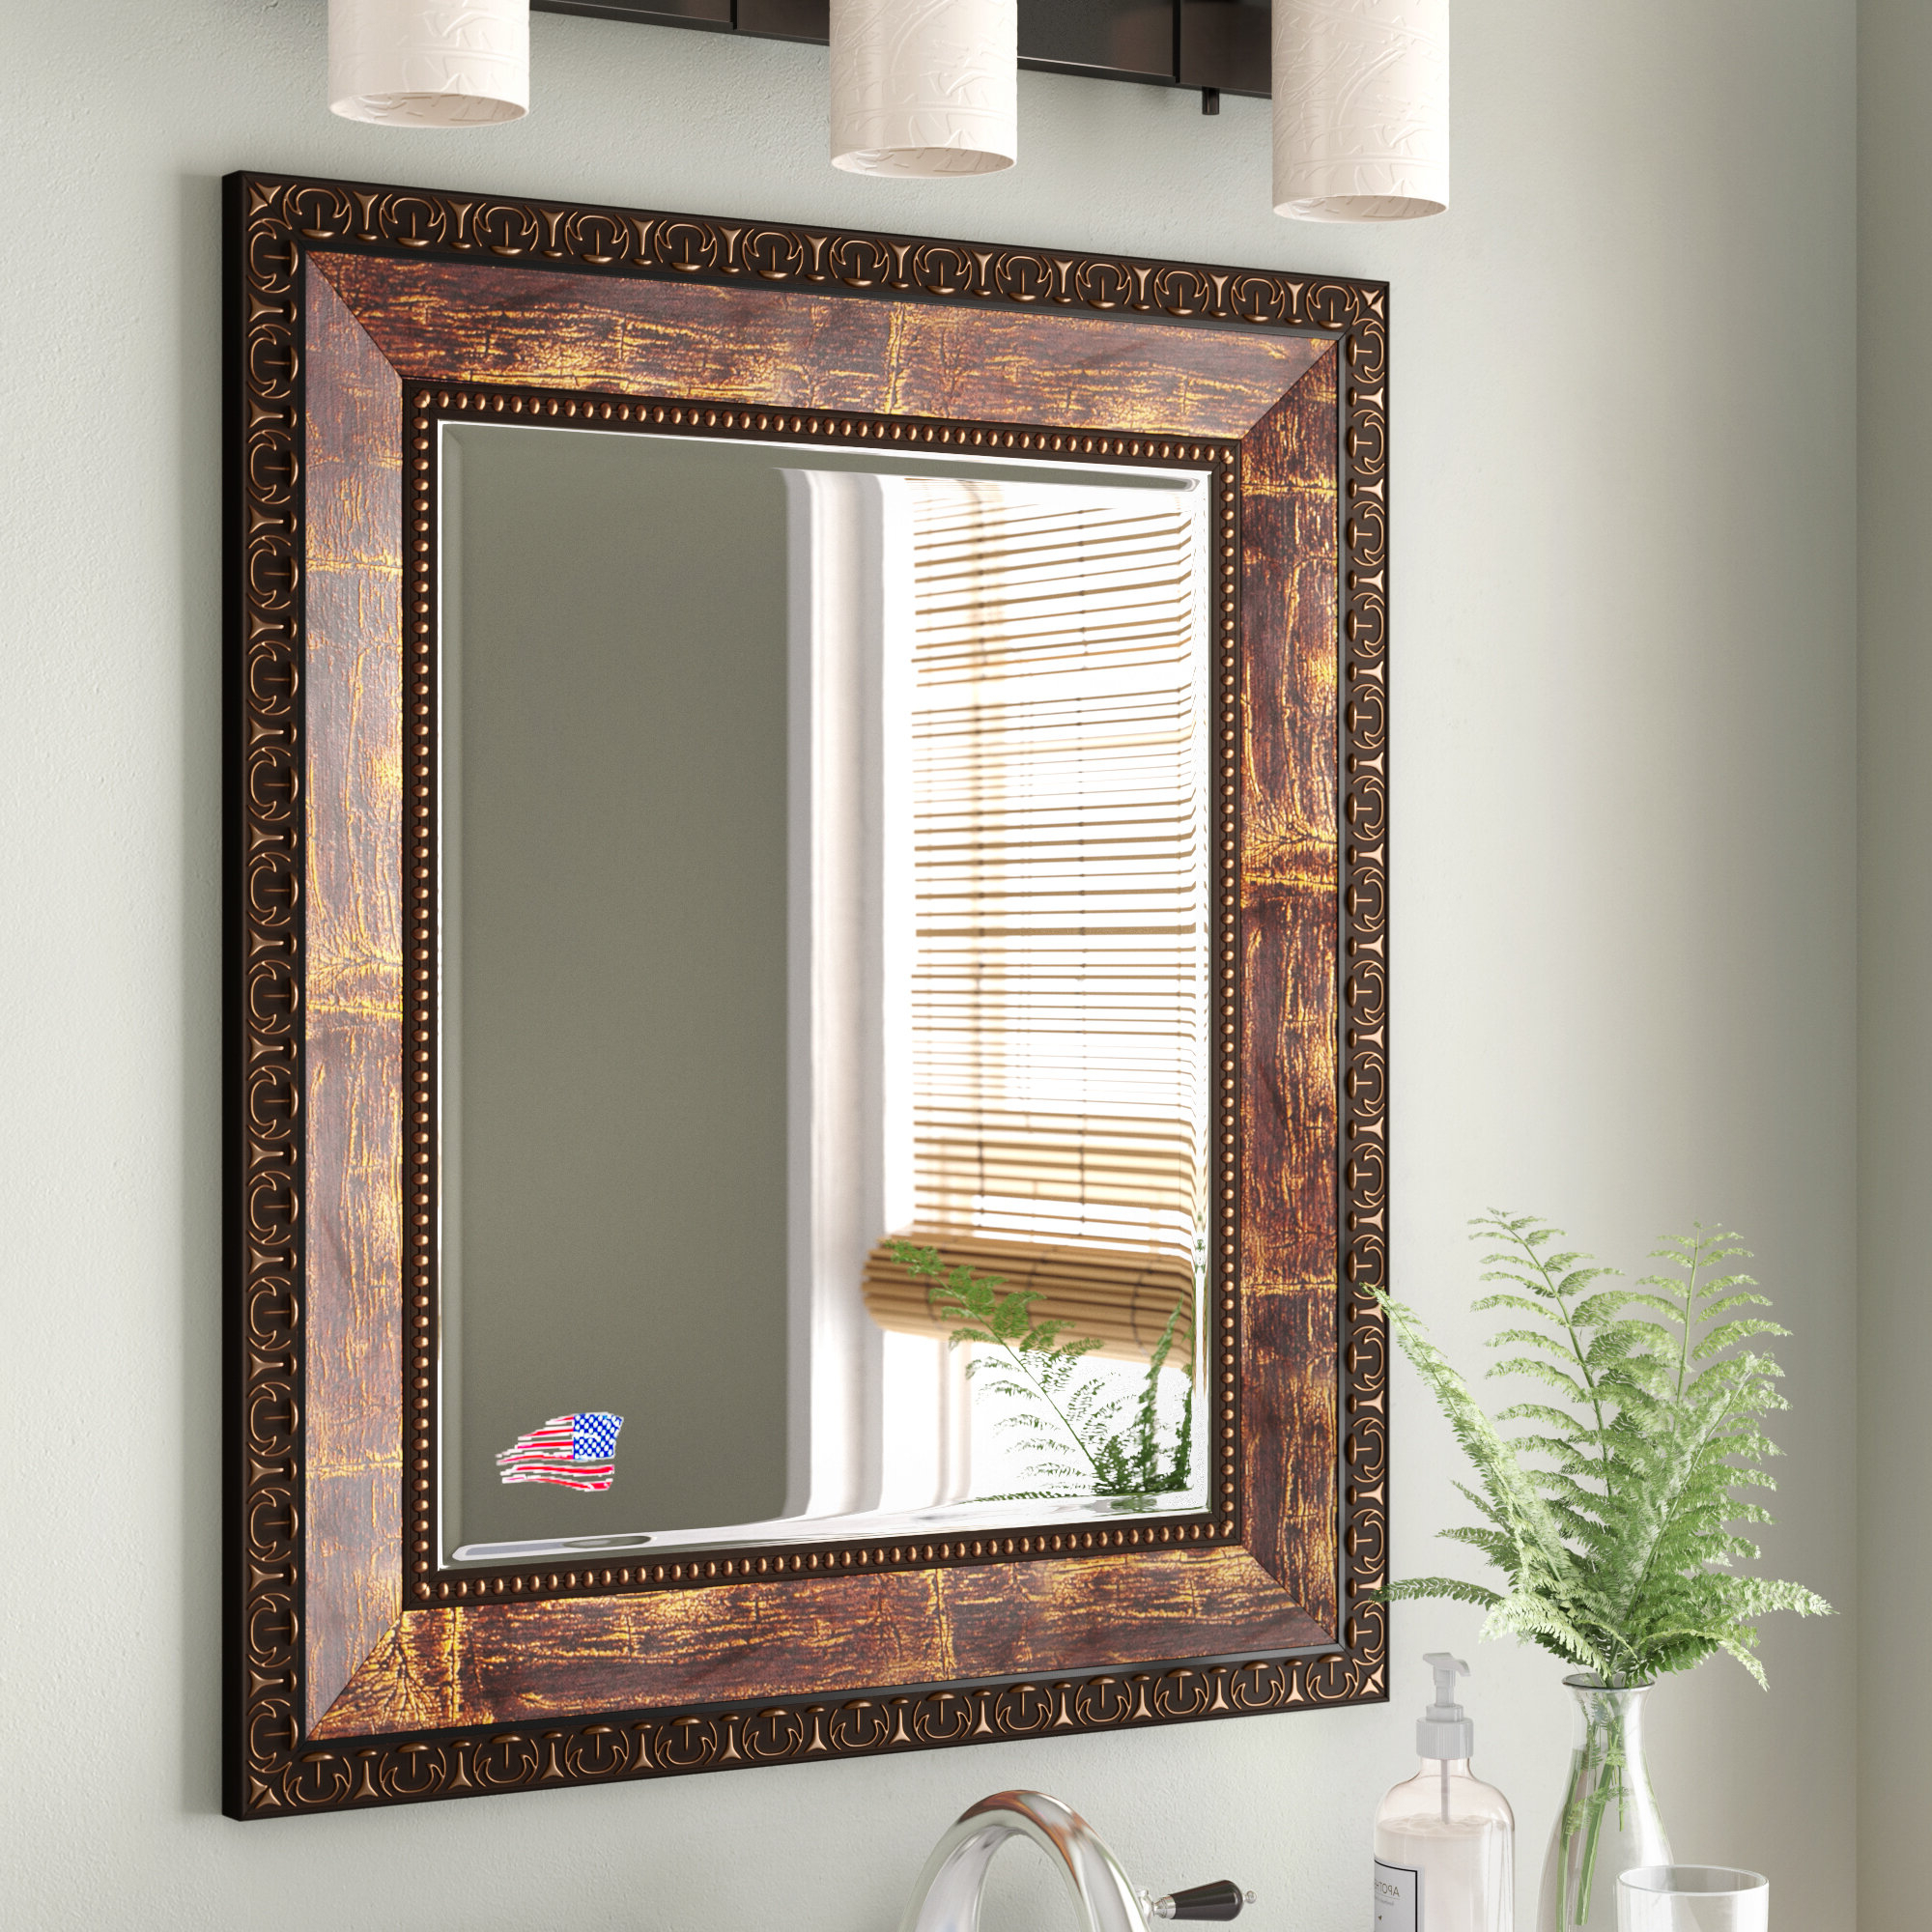 Well Liked Kristy Rectangular Beveled Vanity Mirrors In Distressed In Lofgren Rectangle Wood Traditional Wall Mirror (View 11 of 20)